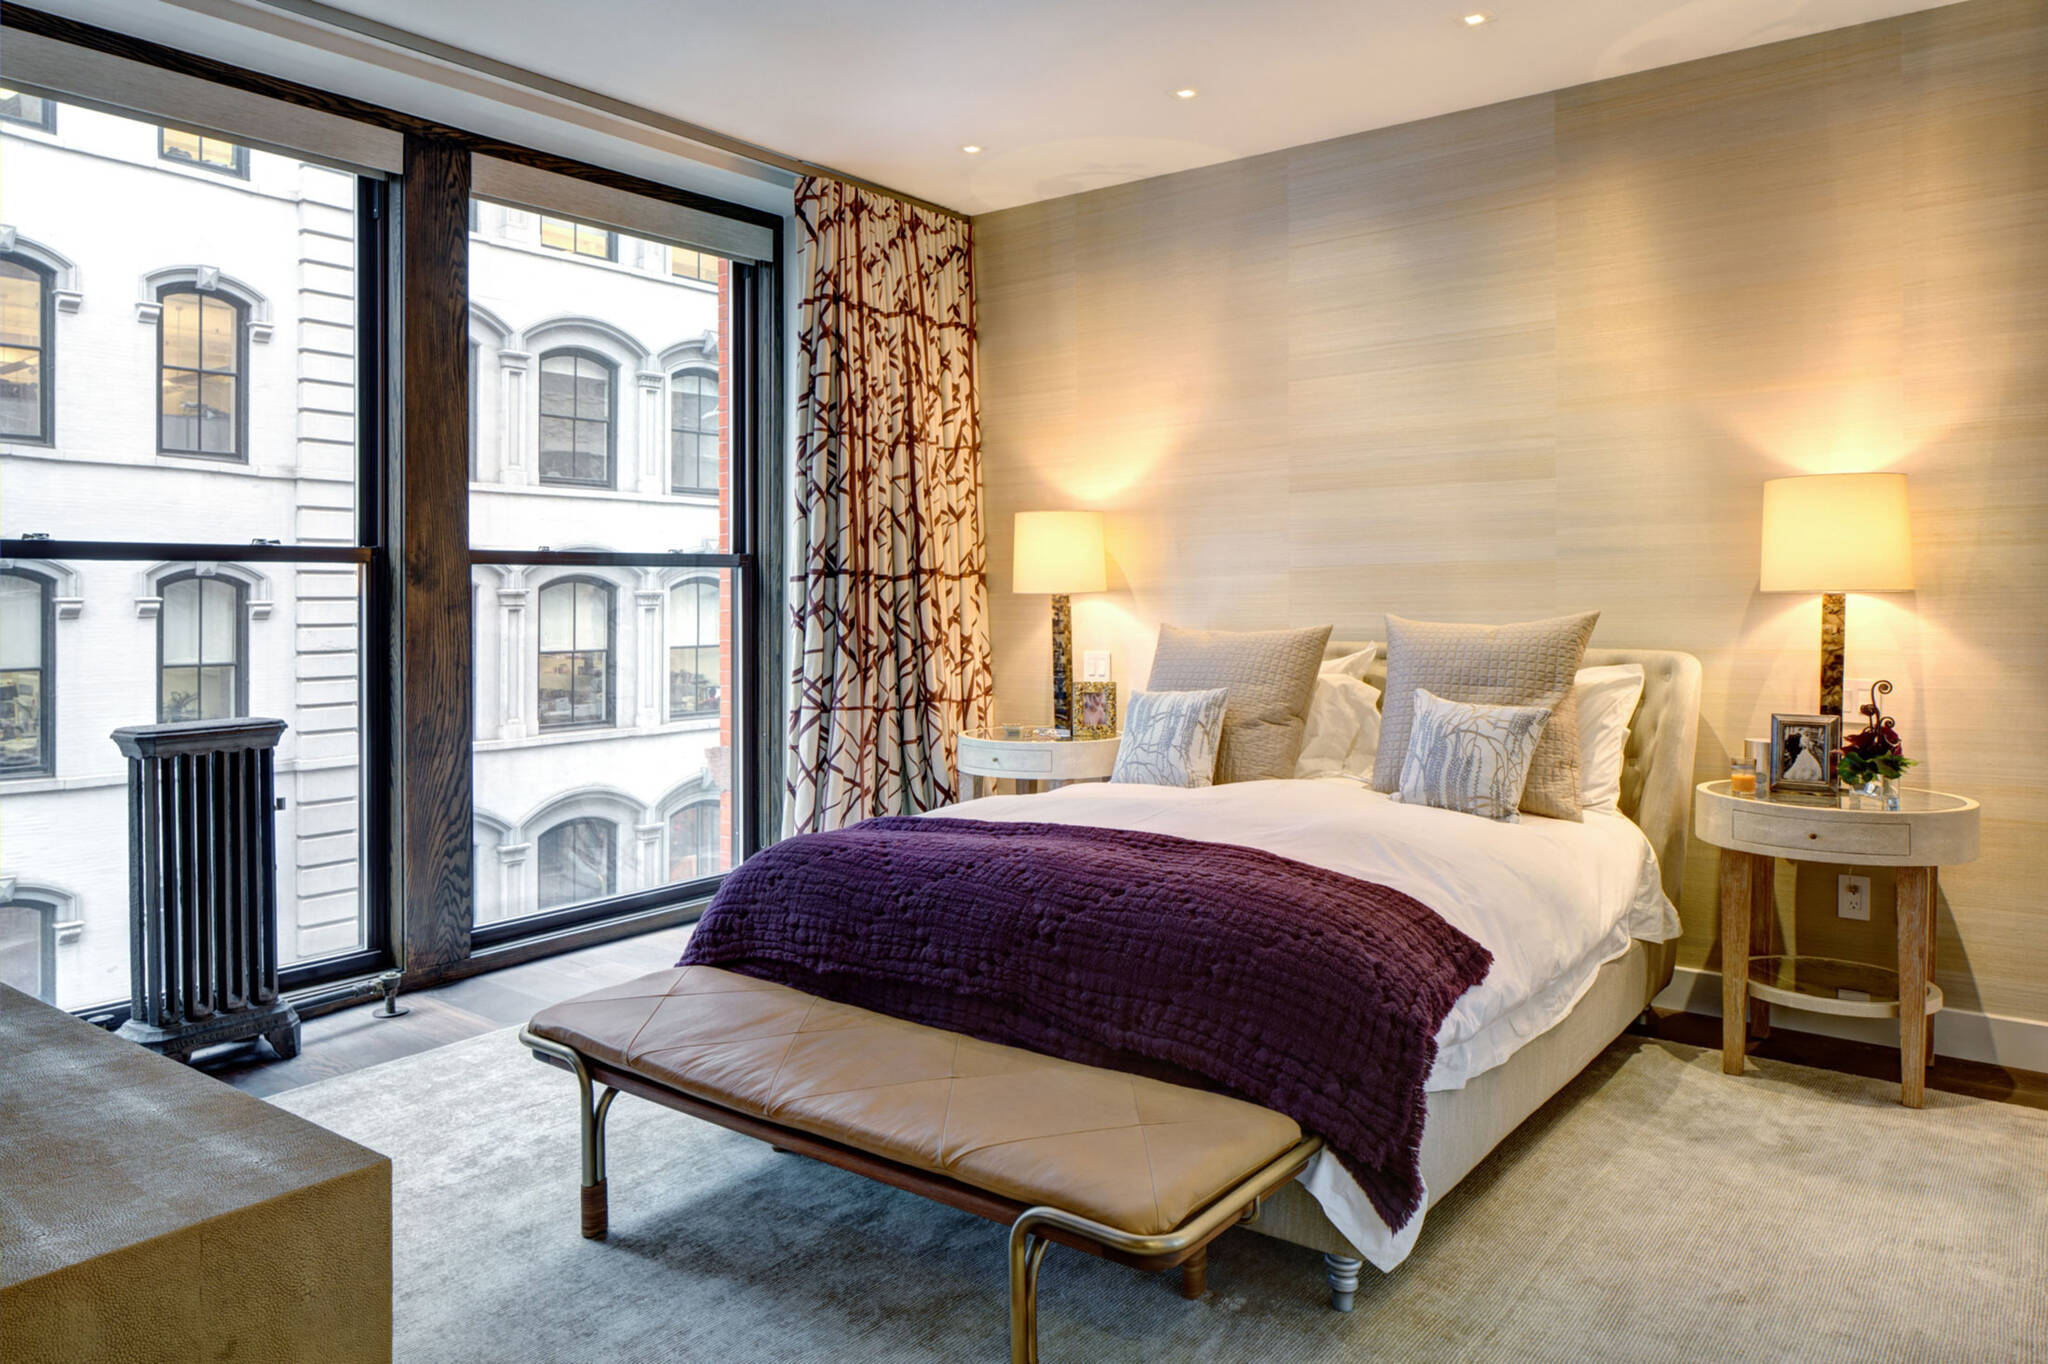 Master bedroom of the loft renovation project in Union Square, New York City designed by the architecture studio Danny Forster & Architecture